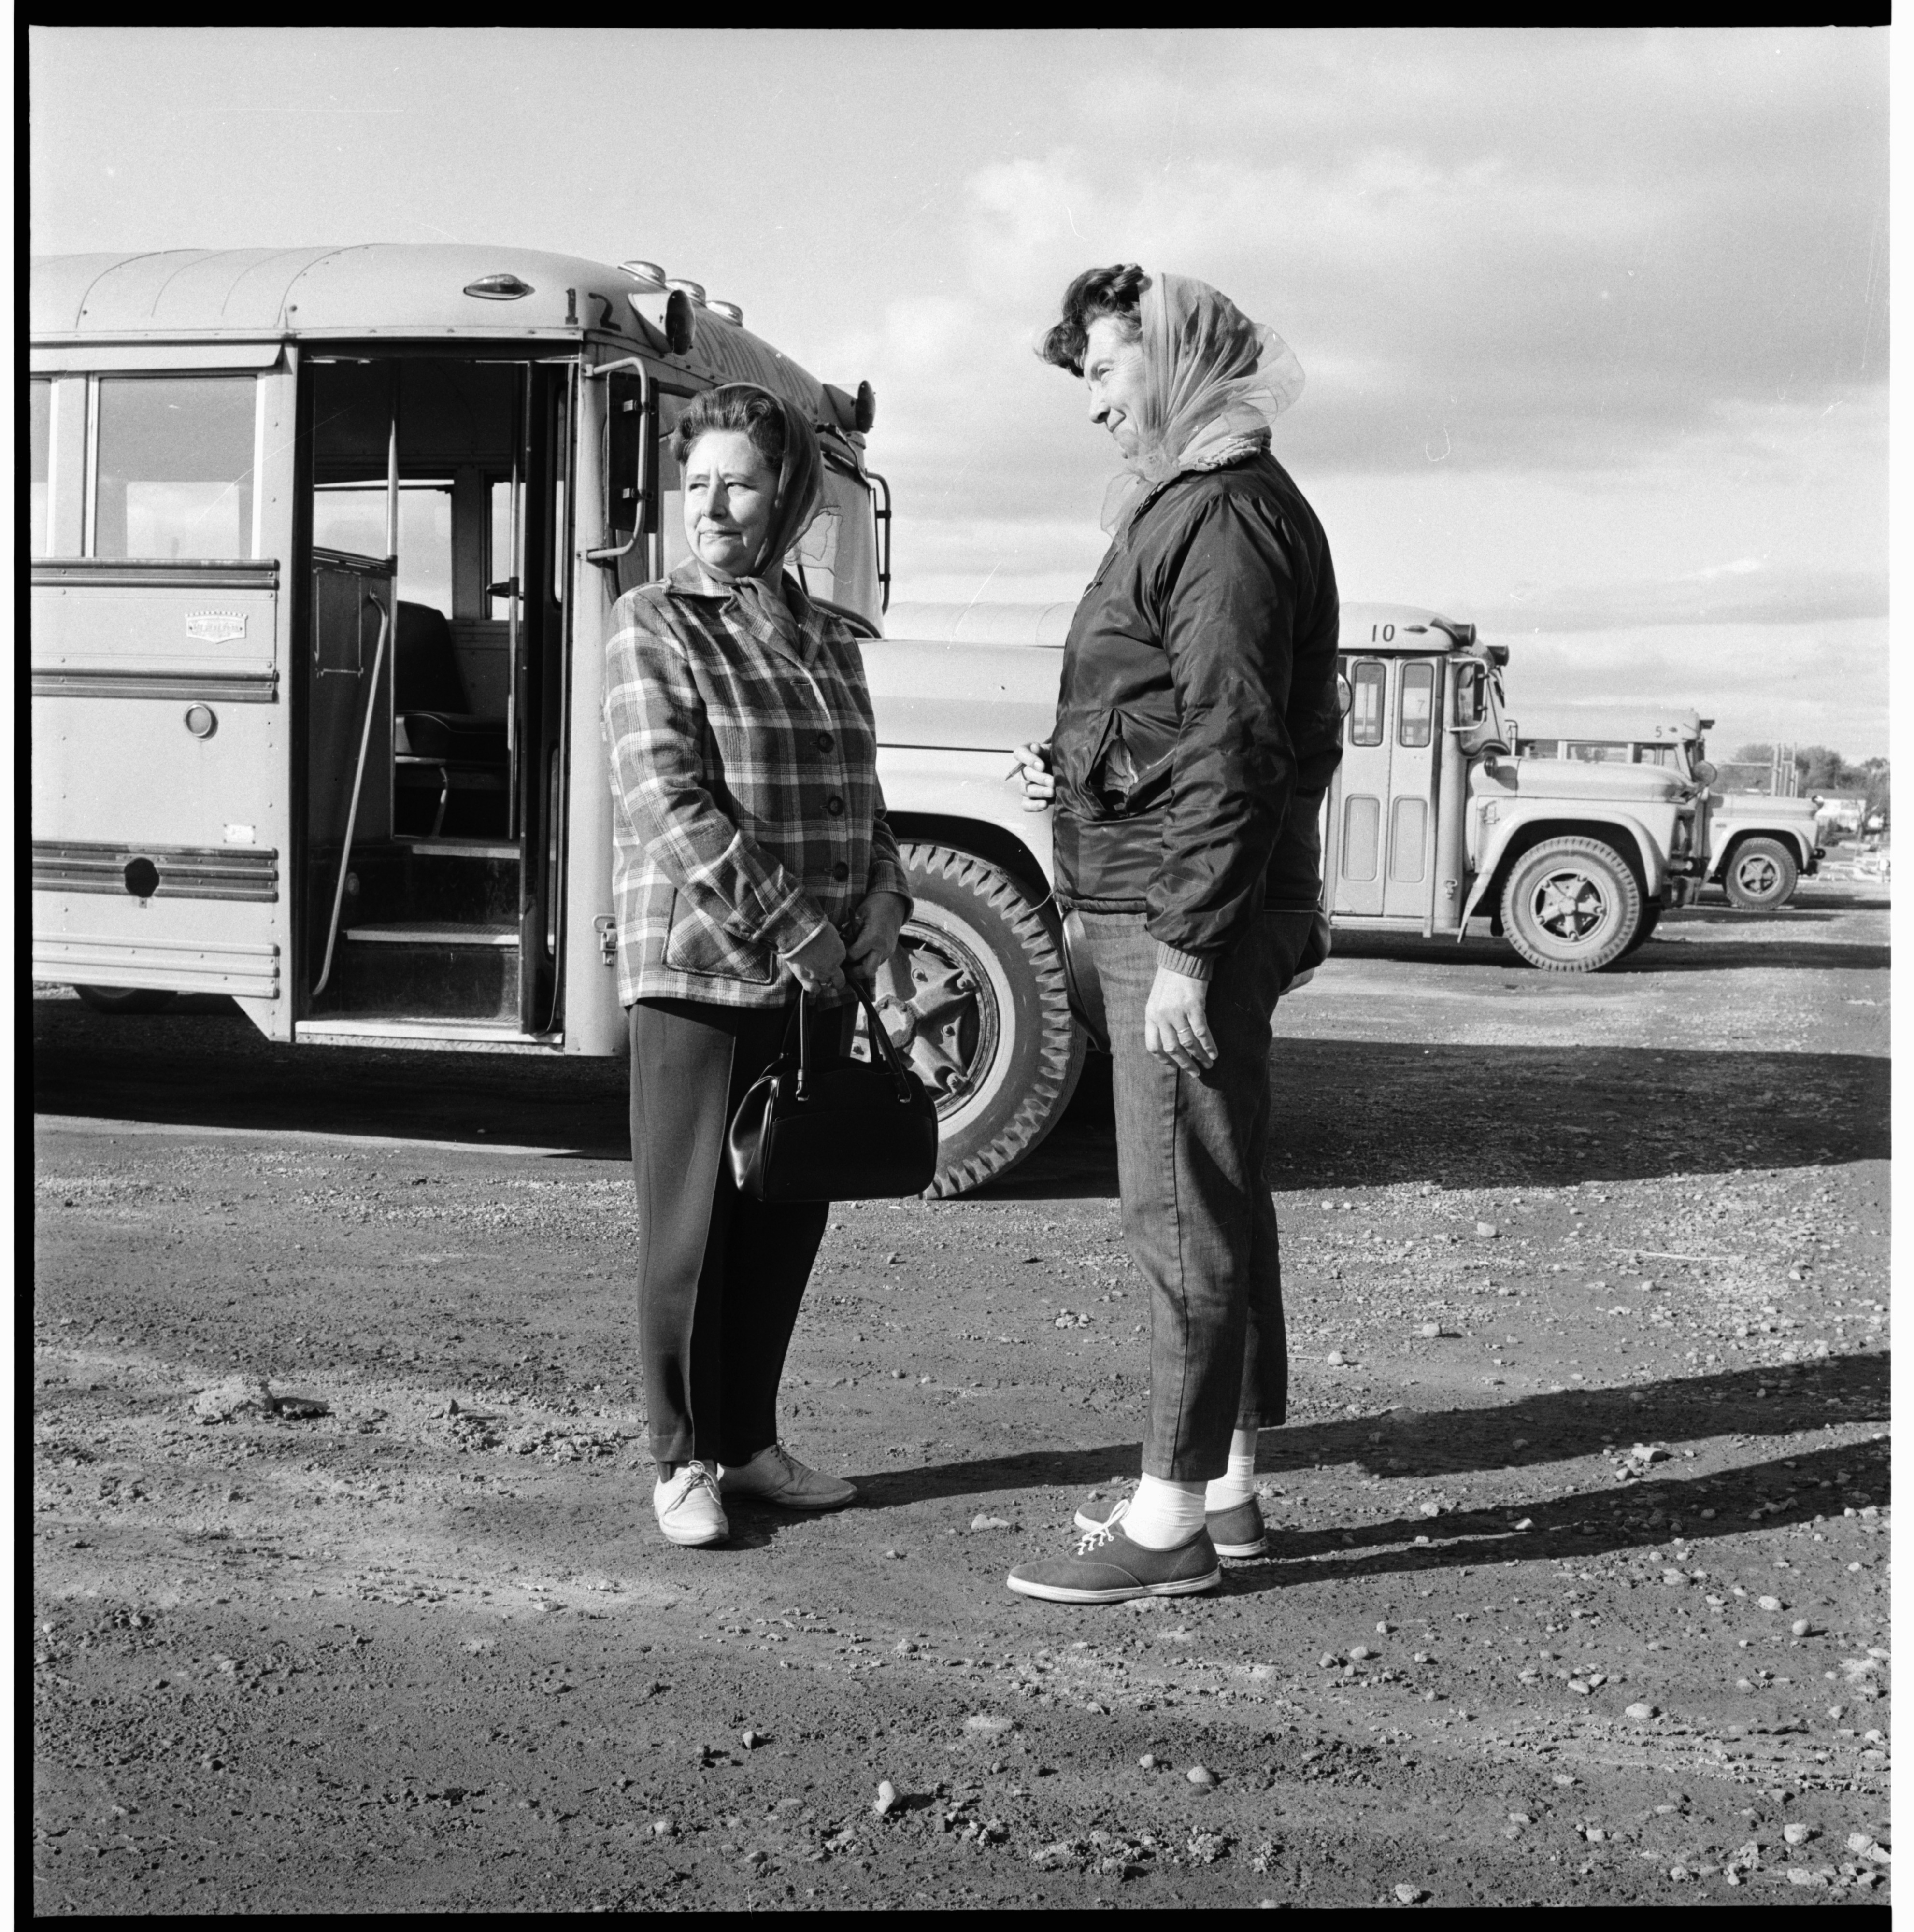 Bus Drivers Mrs. George Bock and Mrs. George Polliey, October 1968 image